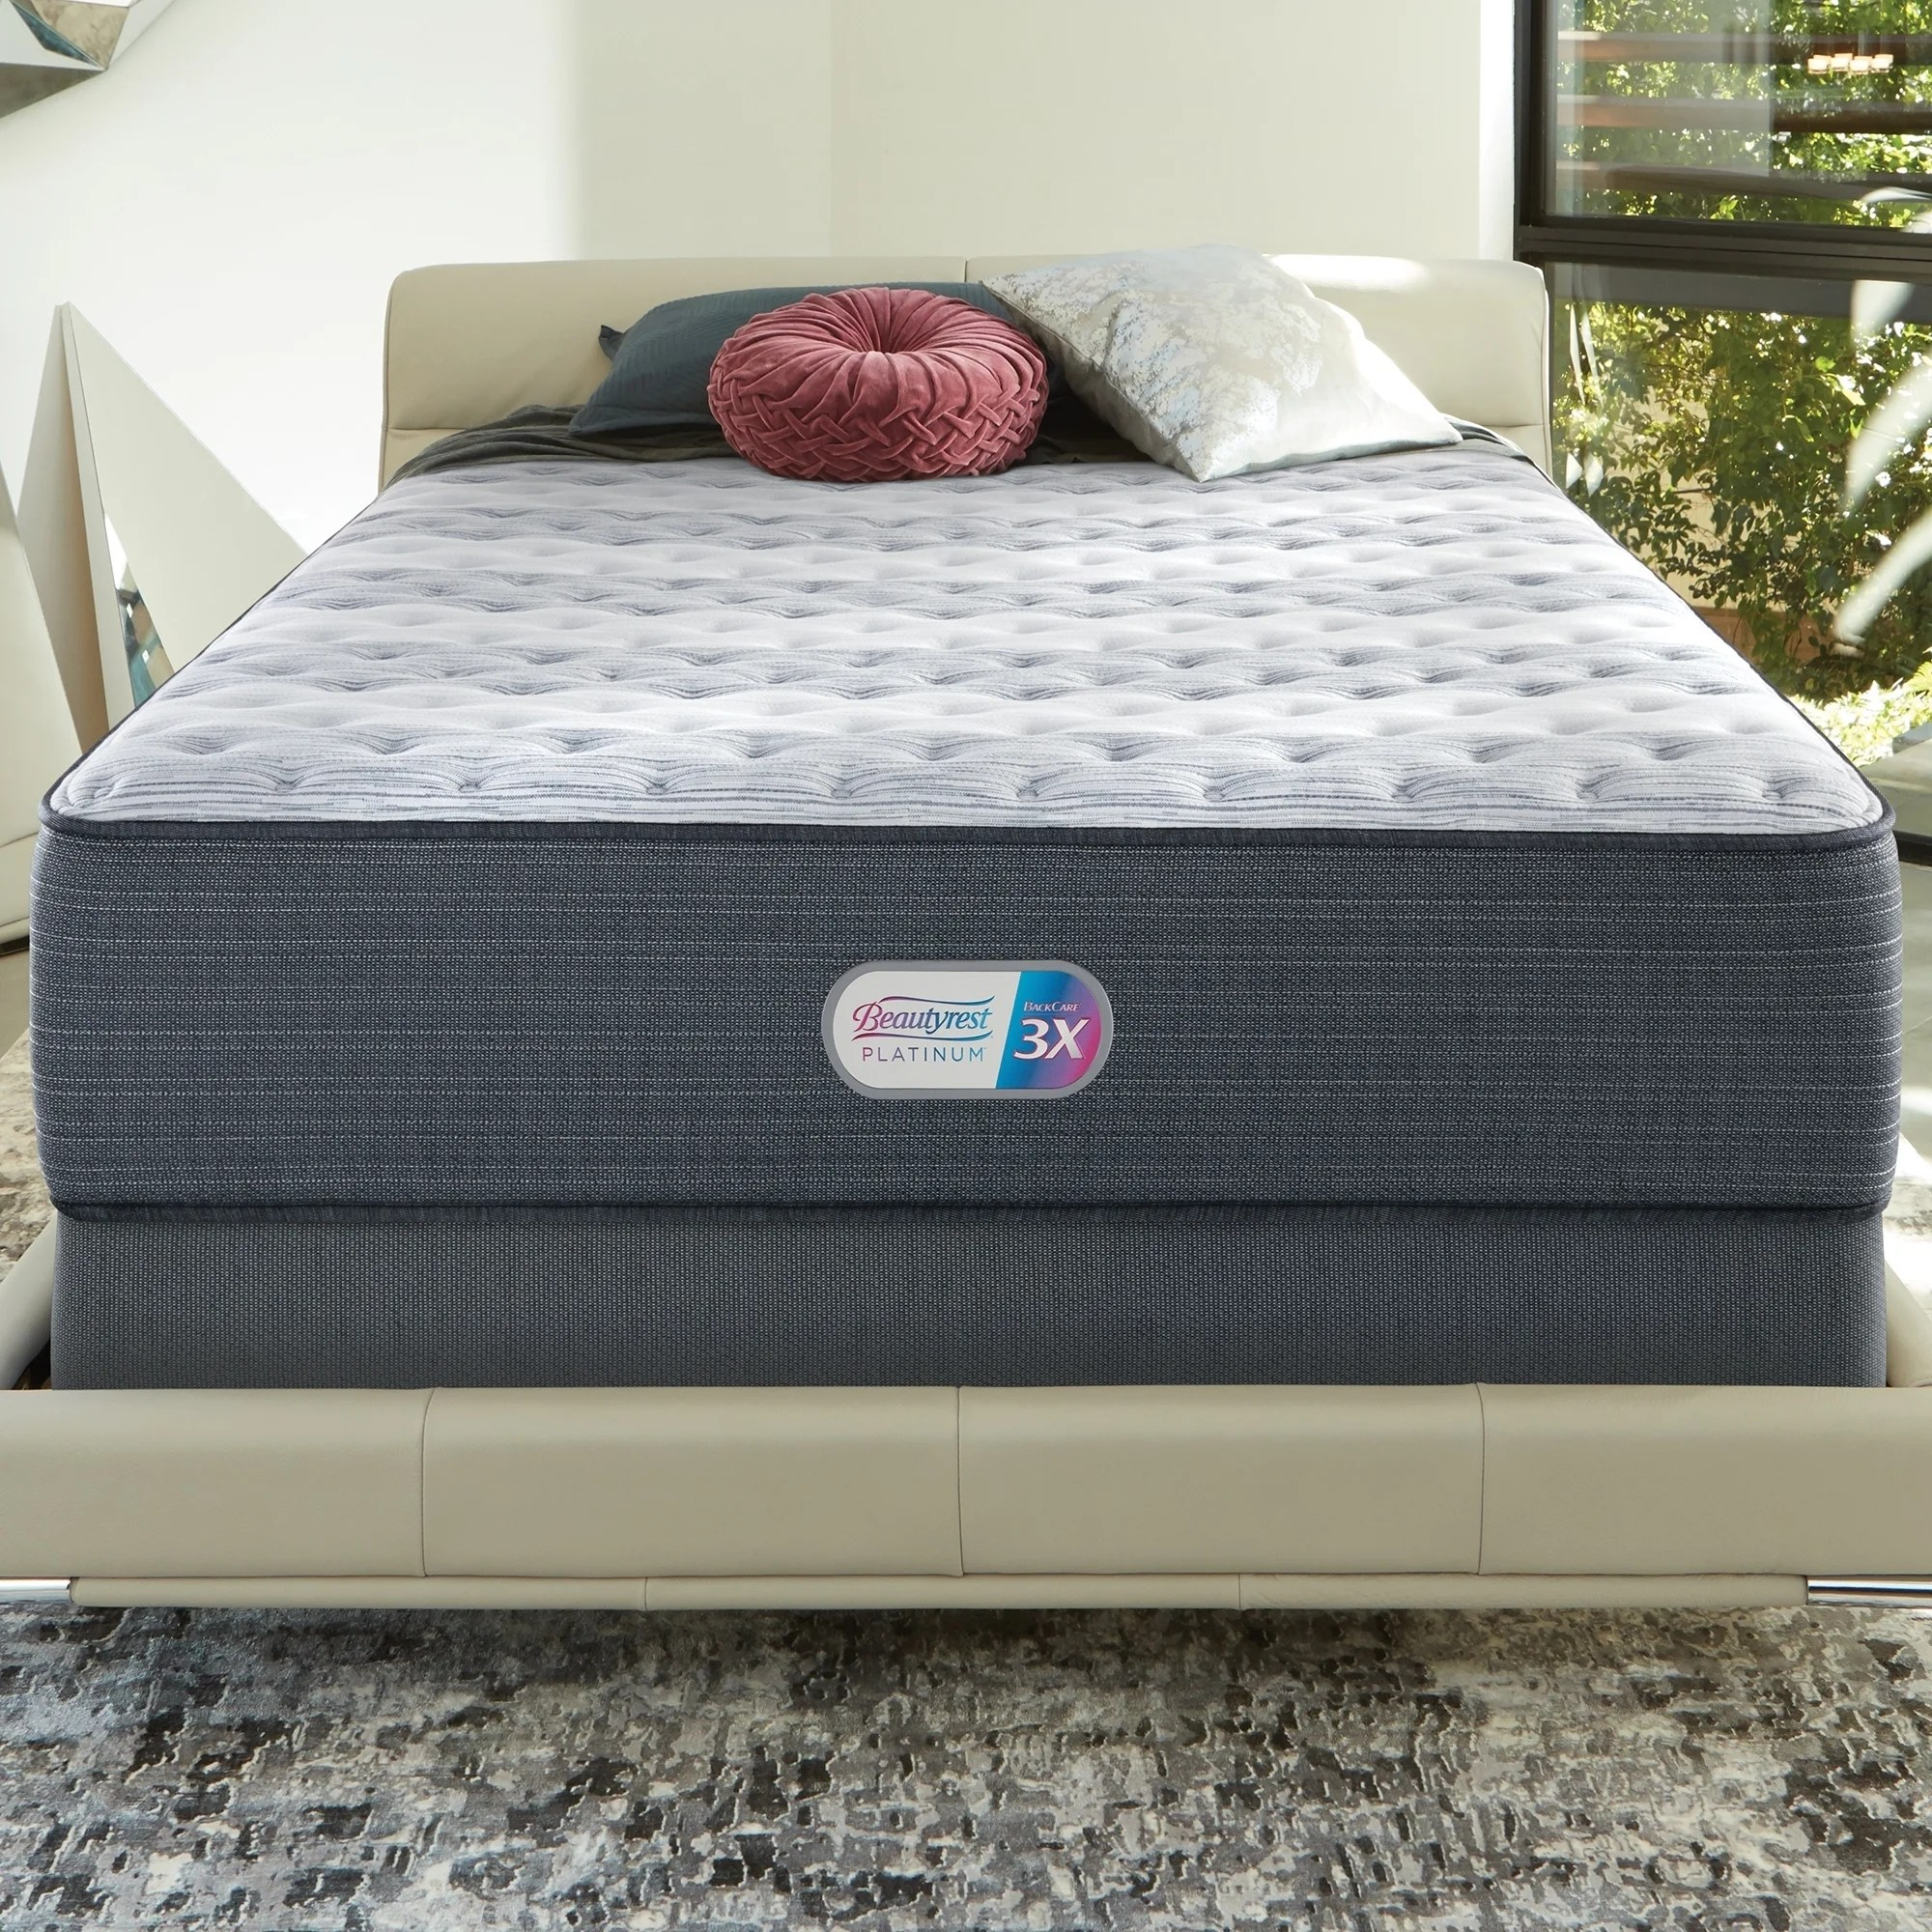 Sealy Posturepedic Backcare Elite Mattress Buy Queen Size Innerspring 14 Inch Mattresses Online At Overstock